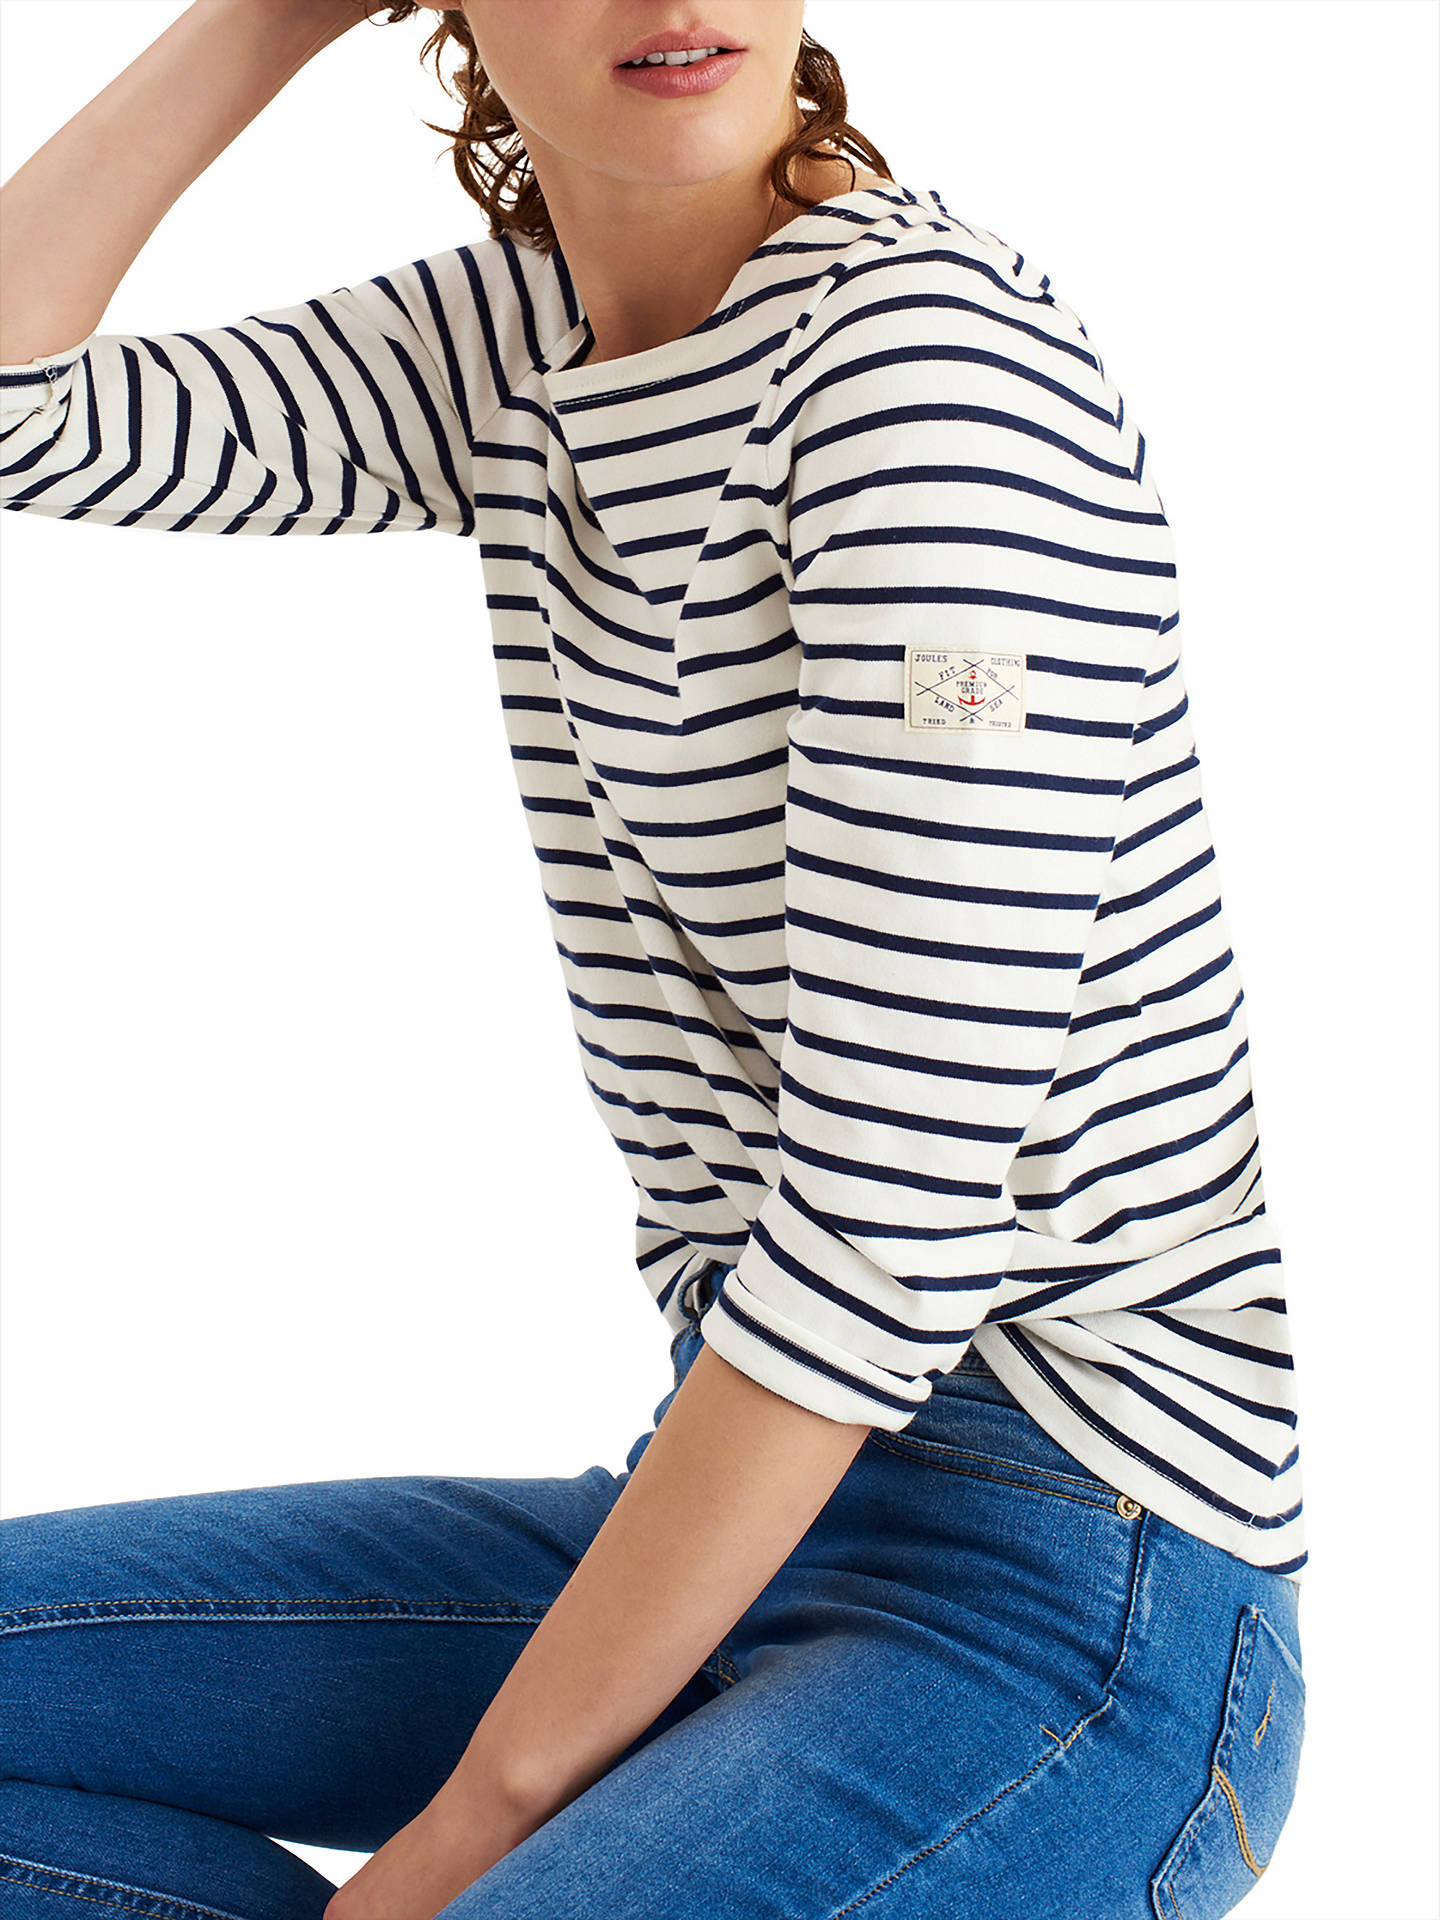 BuyJoules Harbour Stripe 3/4 Sleeve Jersey Top, Cream Stripe, 8 Online at johnlewis.com